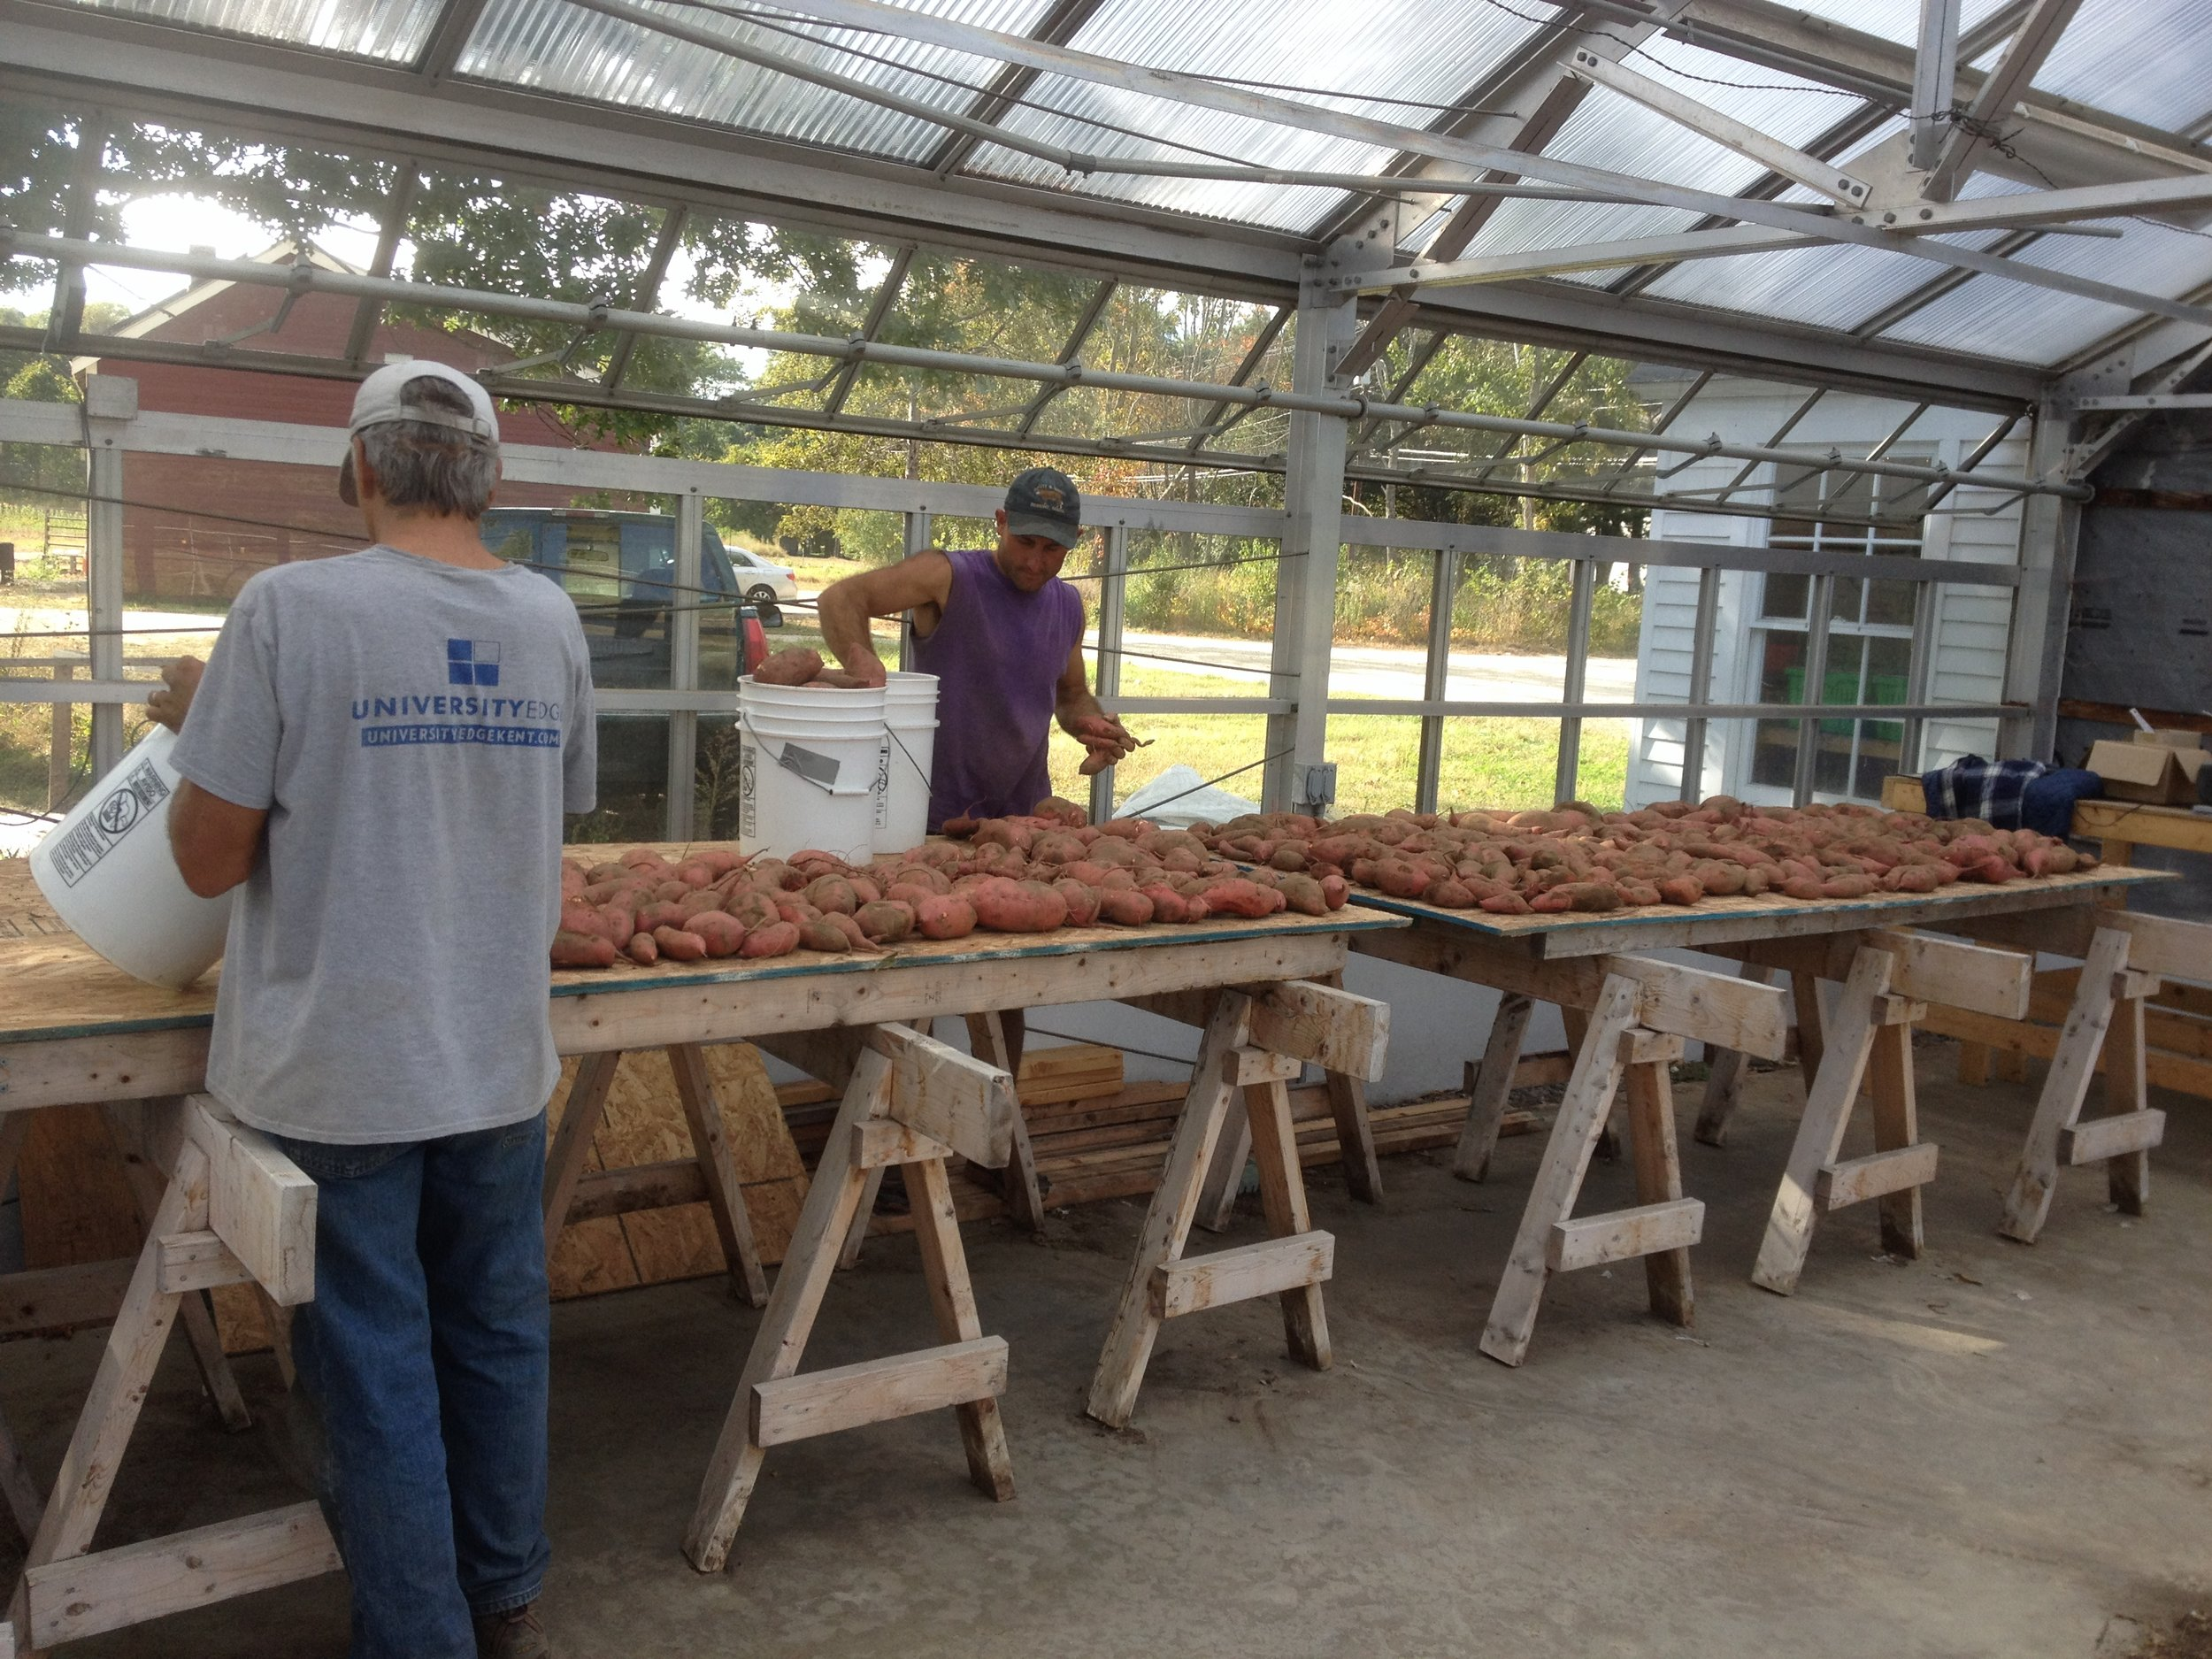 Dave and Shaun laying out sweet potatoes to cure for this year's Late Fall CSA.